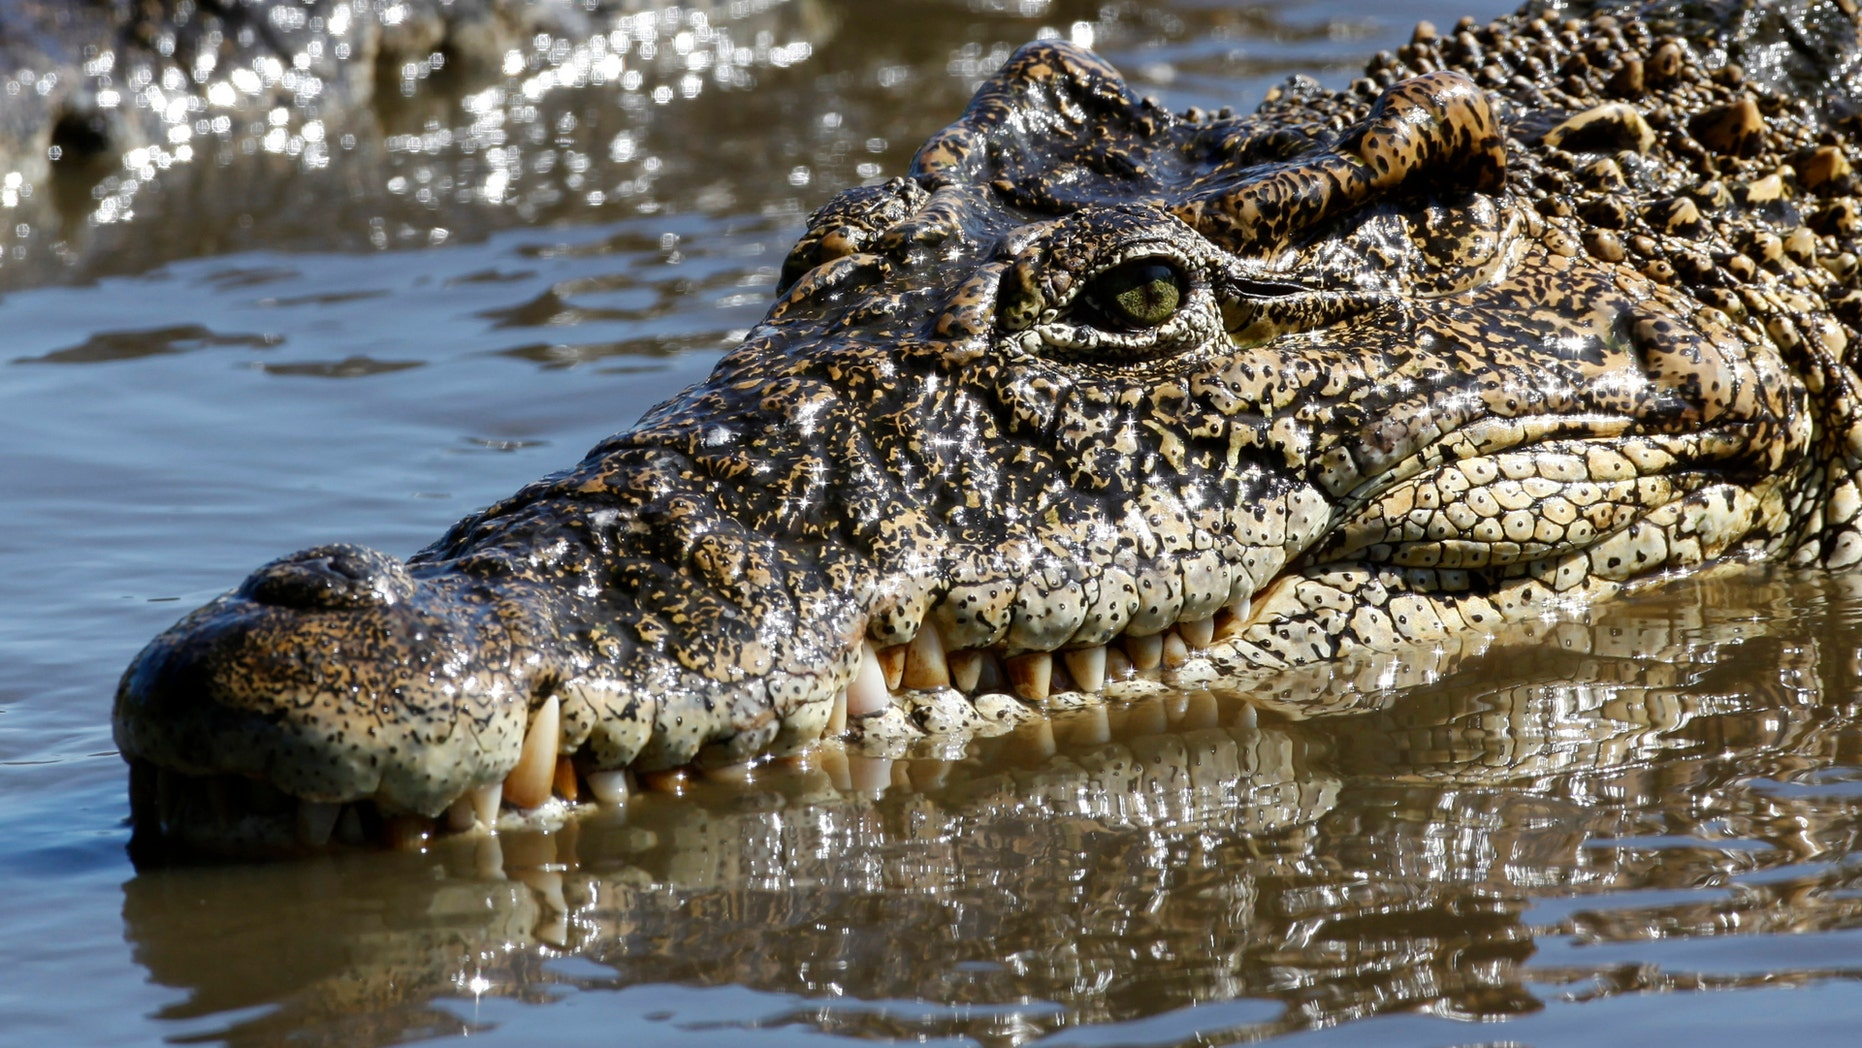 The crocodile attacked the American tourist in the Nichupte lagoon of Cancun, Mexico, according to a local report.